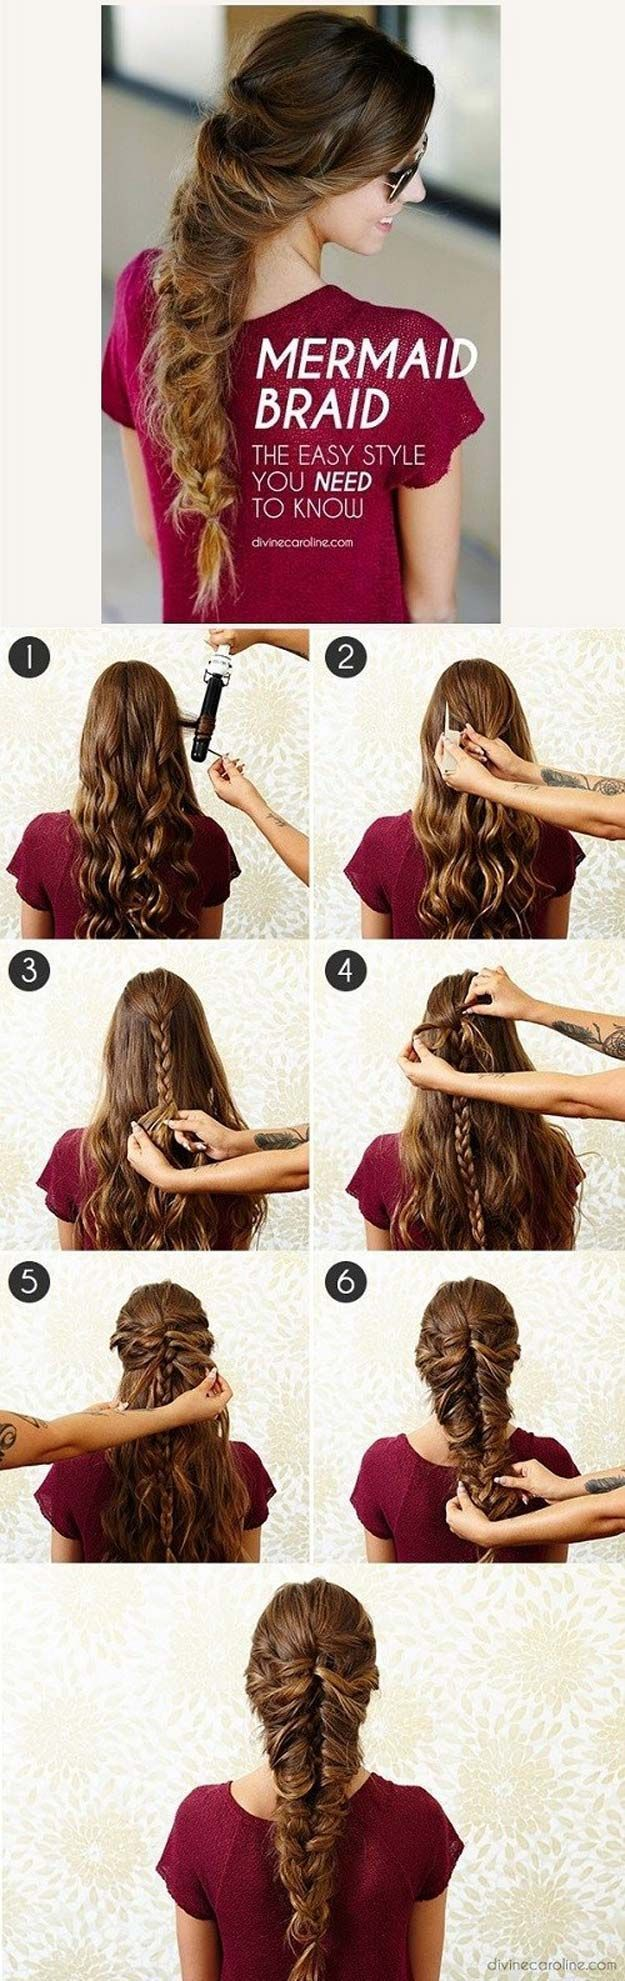 Best Hair Braiding Tutorials - Mermaid Braid - Easy Step by Step Tutorials for Braids - How To Braid Fishtail, French Braids, Flower Crown, Side Braids, Cornrows, Updos - Cool Braided Hairstyles for Girls, Teens and Women - School, Day and Evening, Boho,